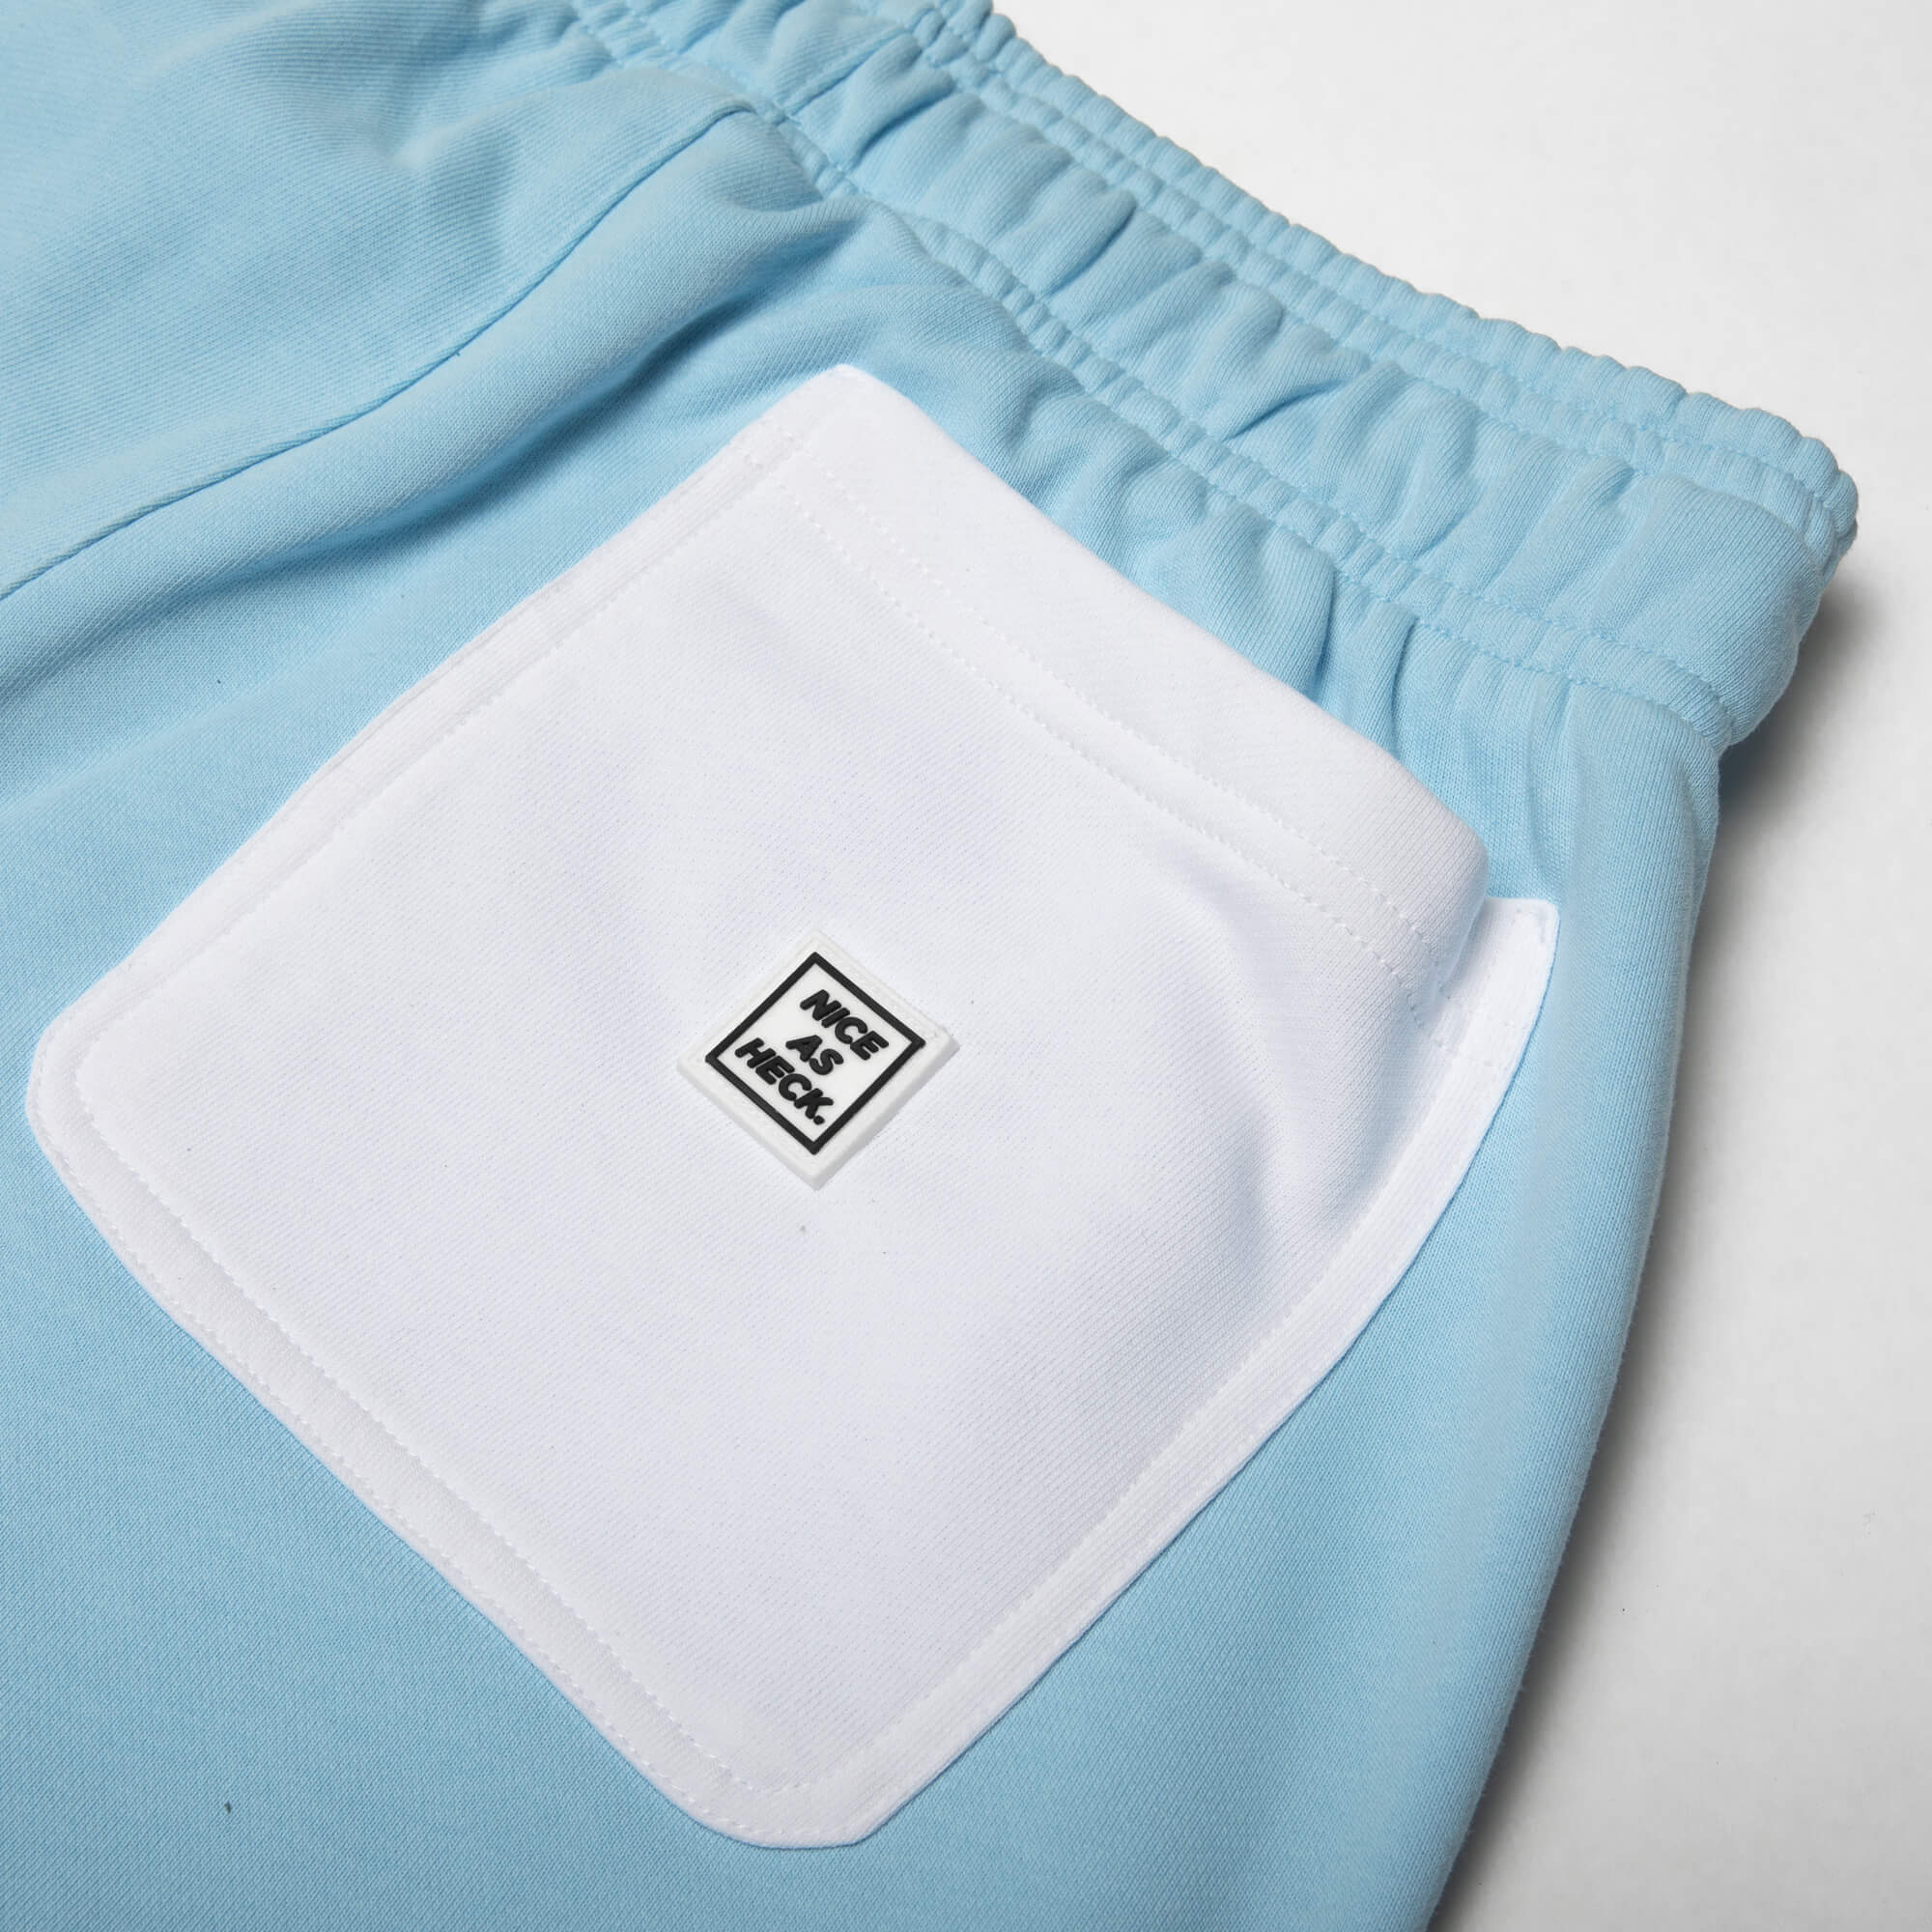 Close up view of the white back pocket on the Sunday sweats